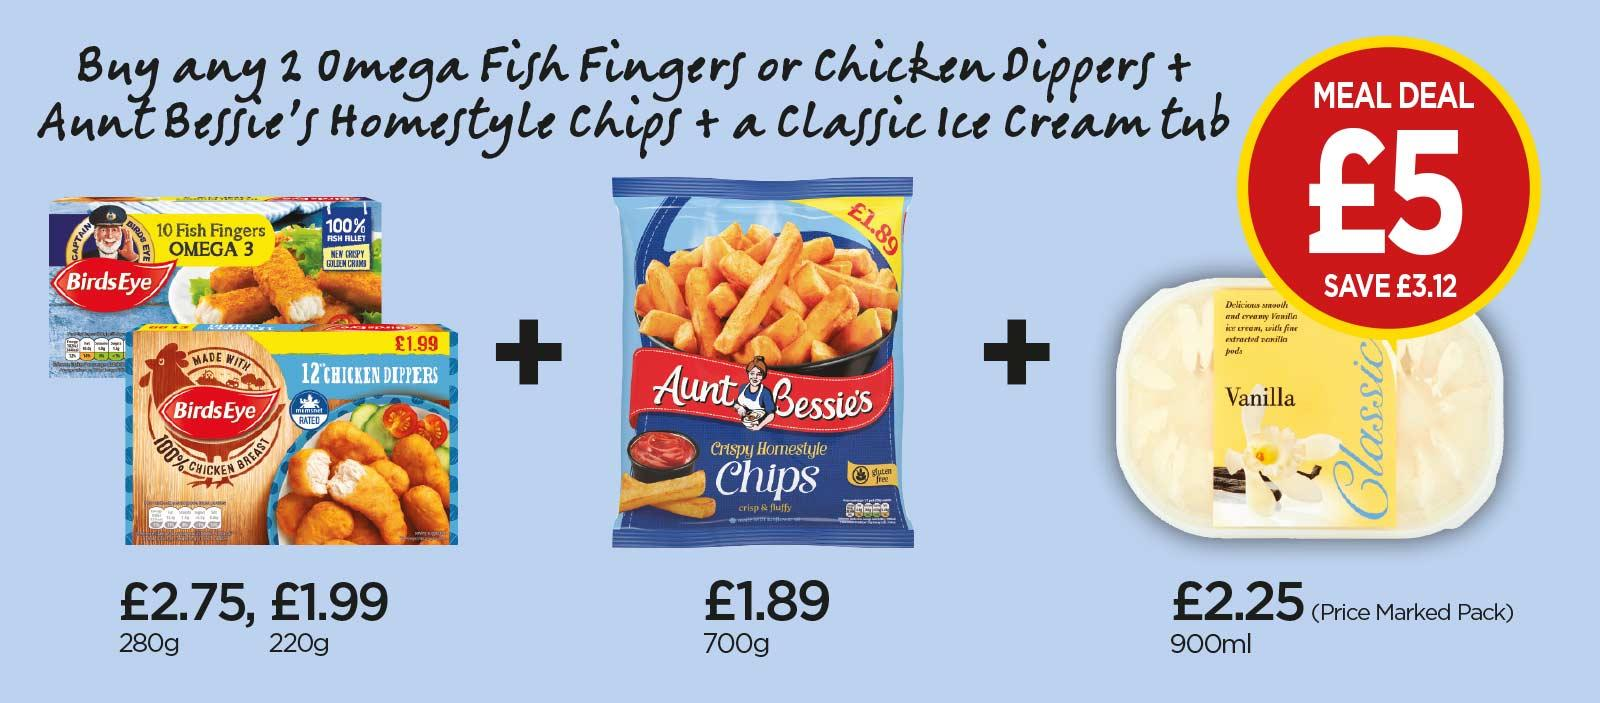 £5 MEAL DEAL: Birds Eye Omega 3 Fish Fingers, Chicken Dippers, Aunt Bessie's Homestyle Chips, Classic Vanilla Ice Cream Tub - at Budgens